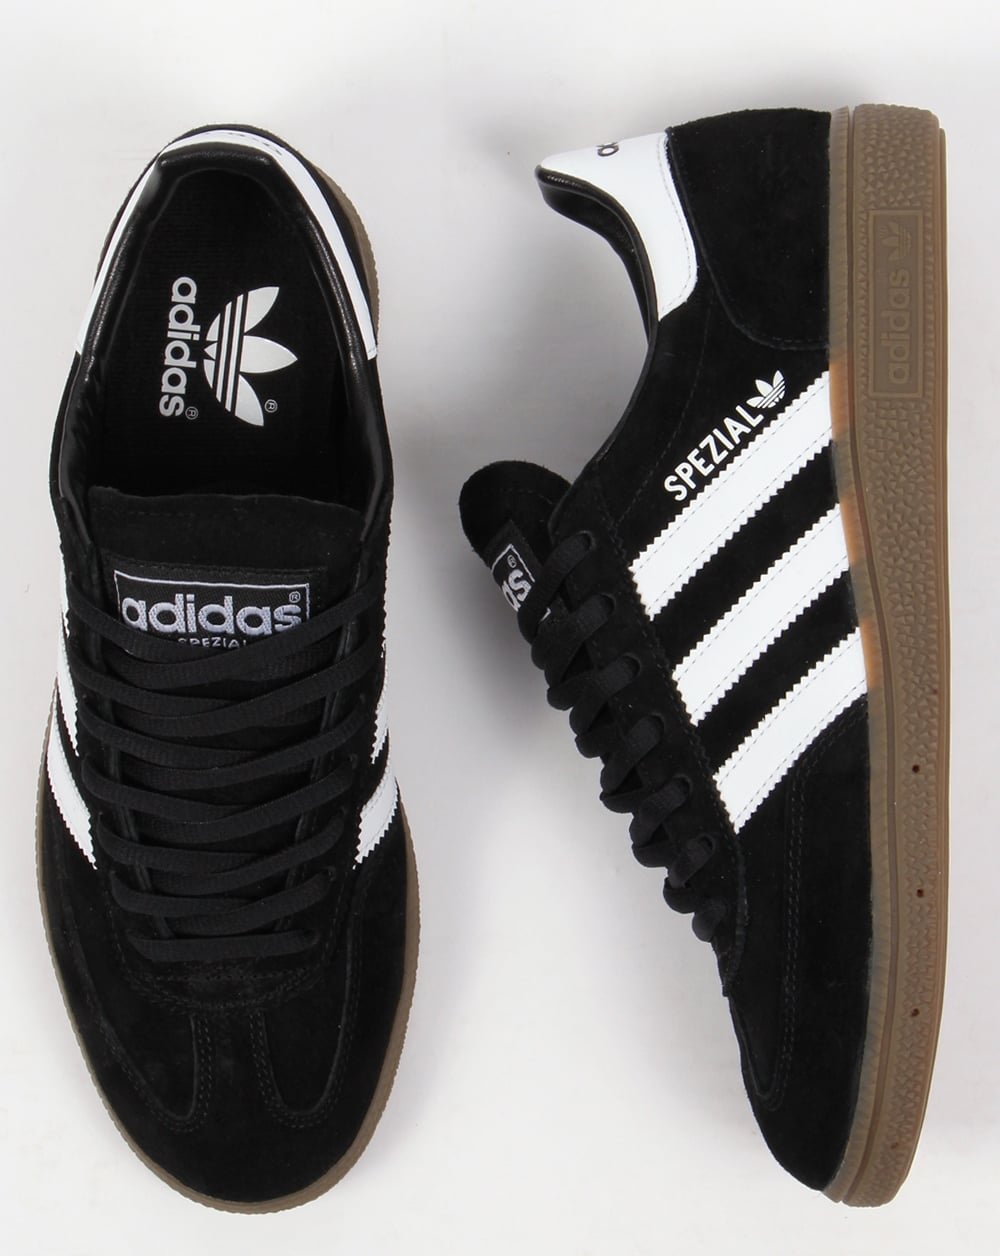 mens adidas trainers black